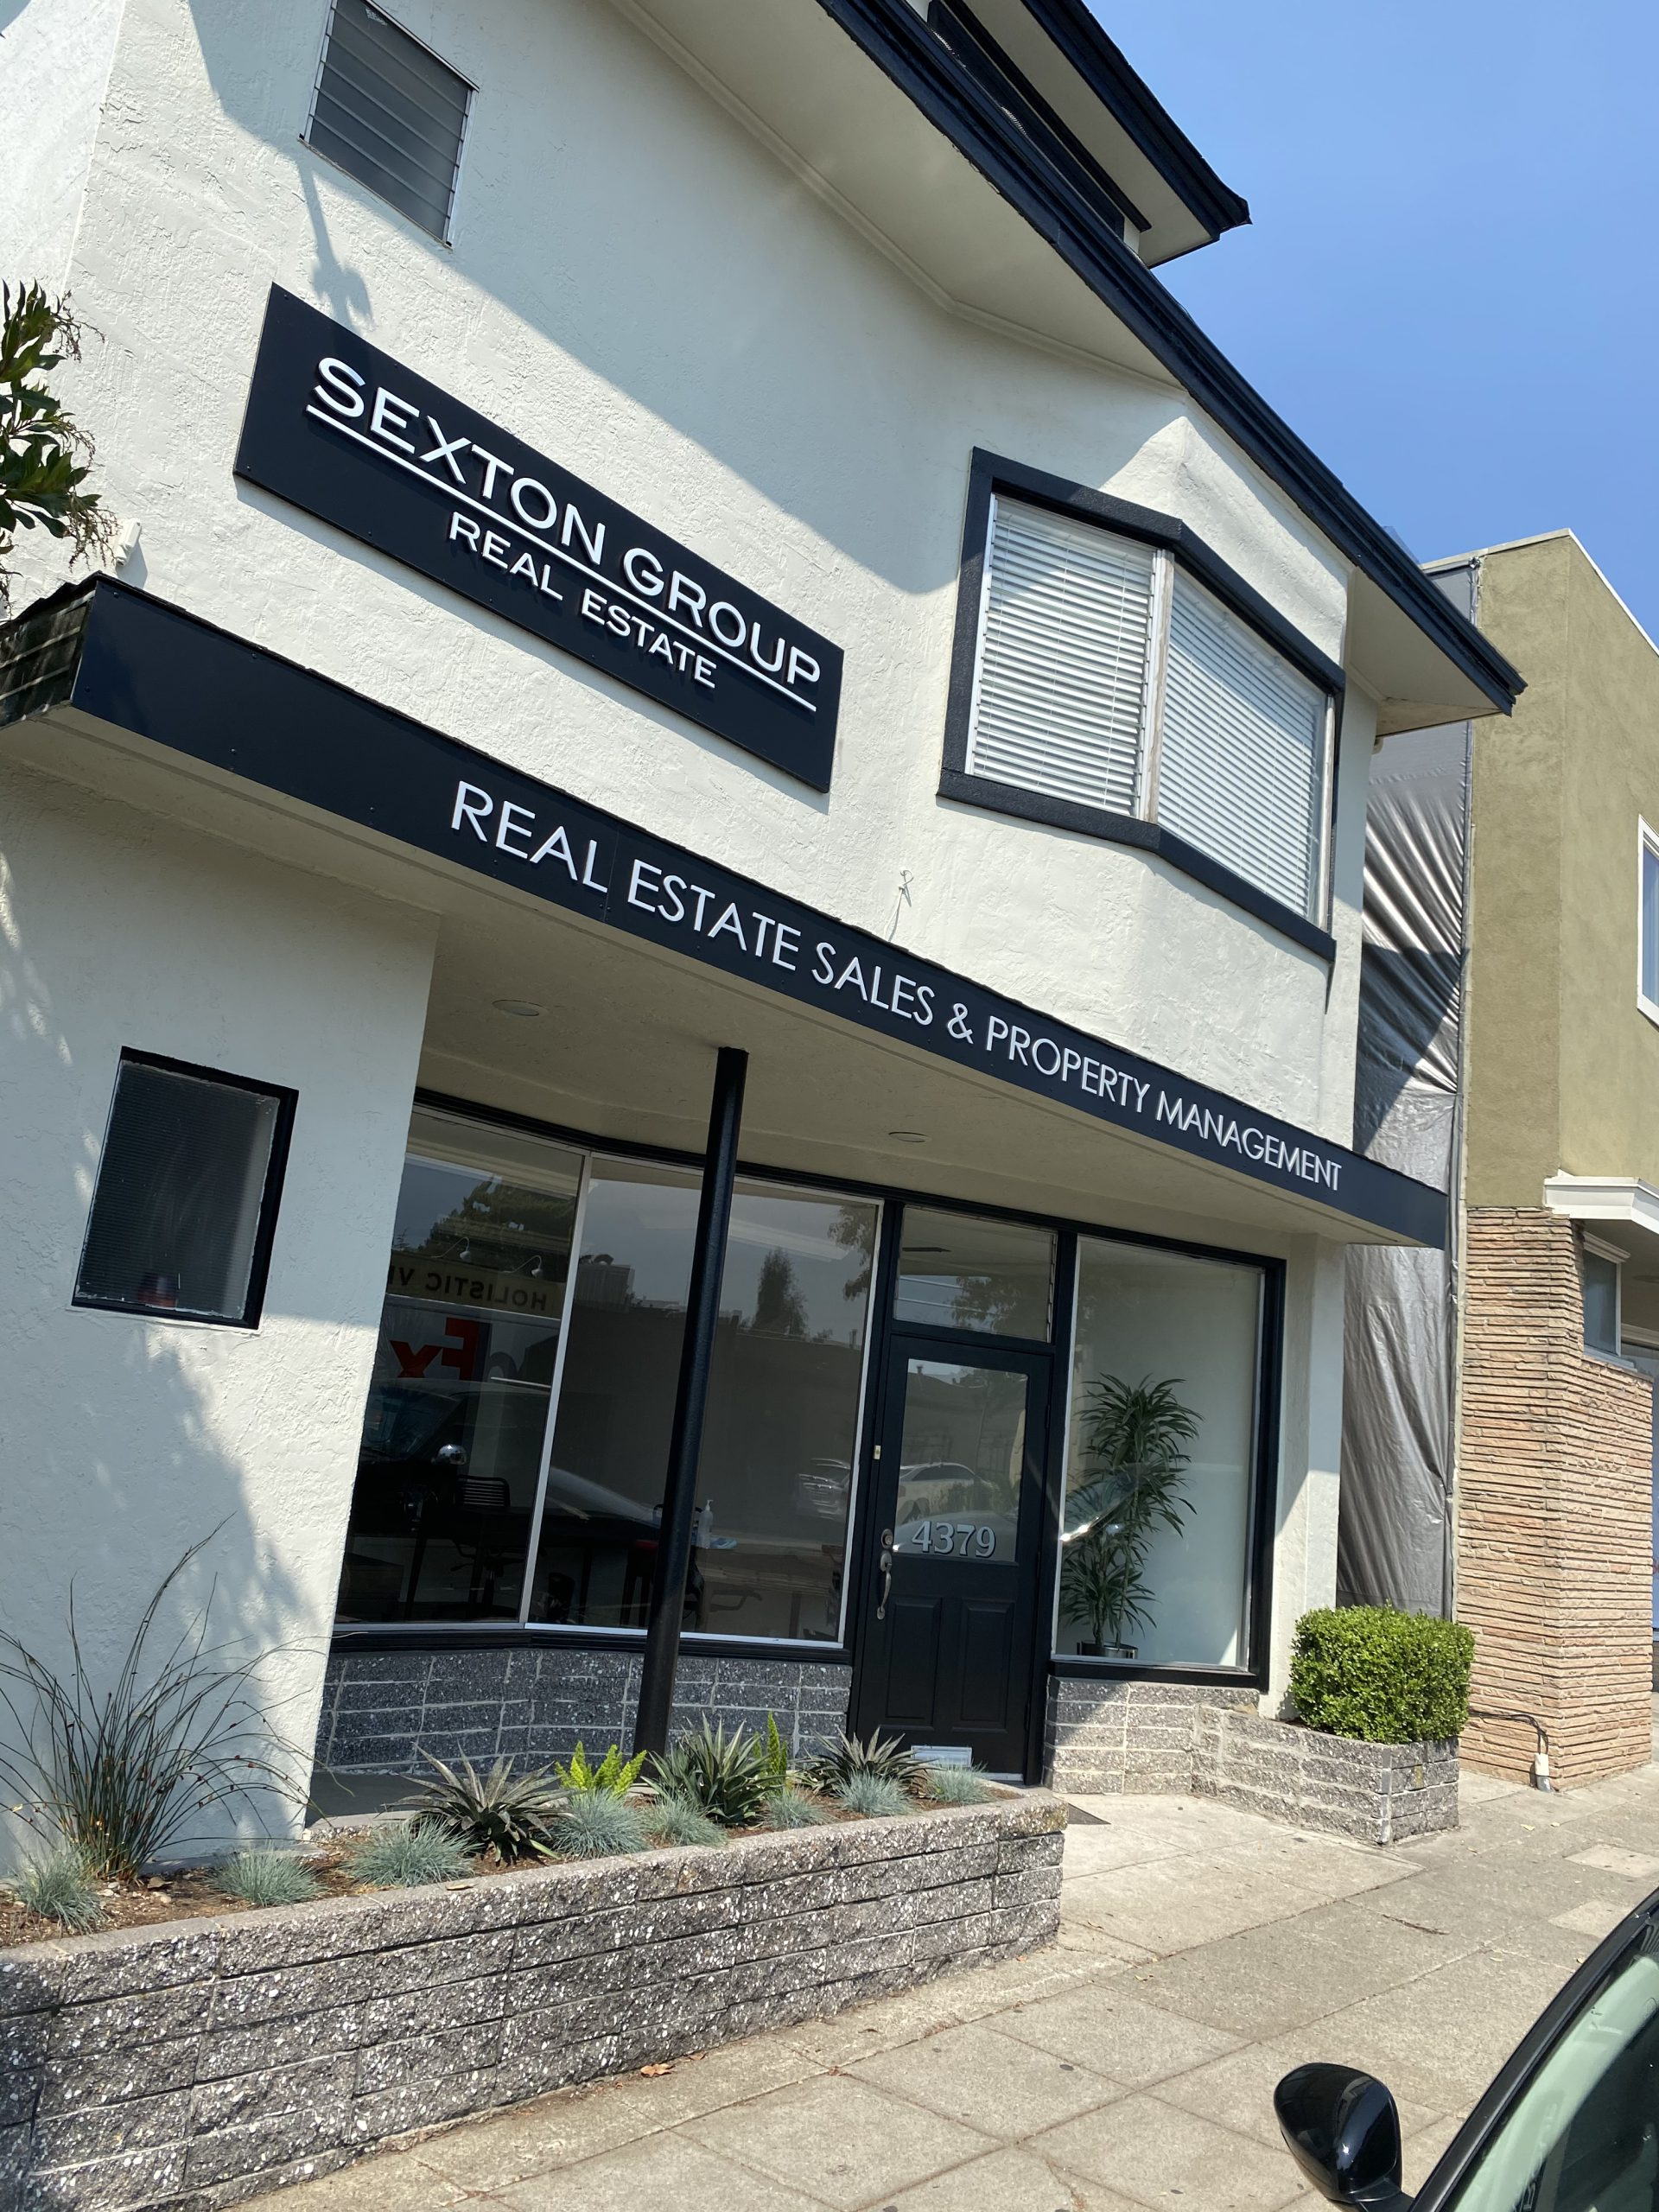 The Sexton Group Real Estate | Property Management Oakland Office